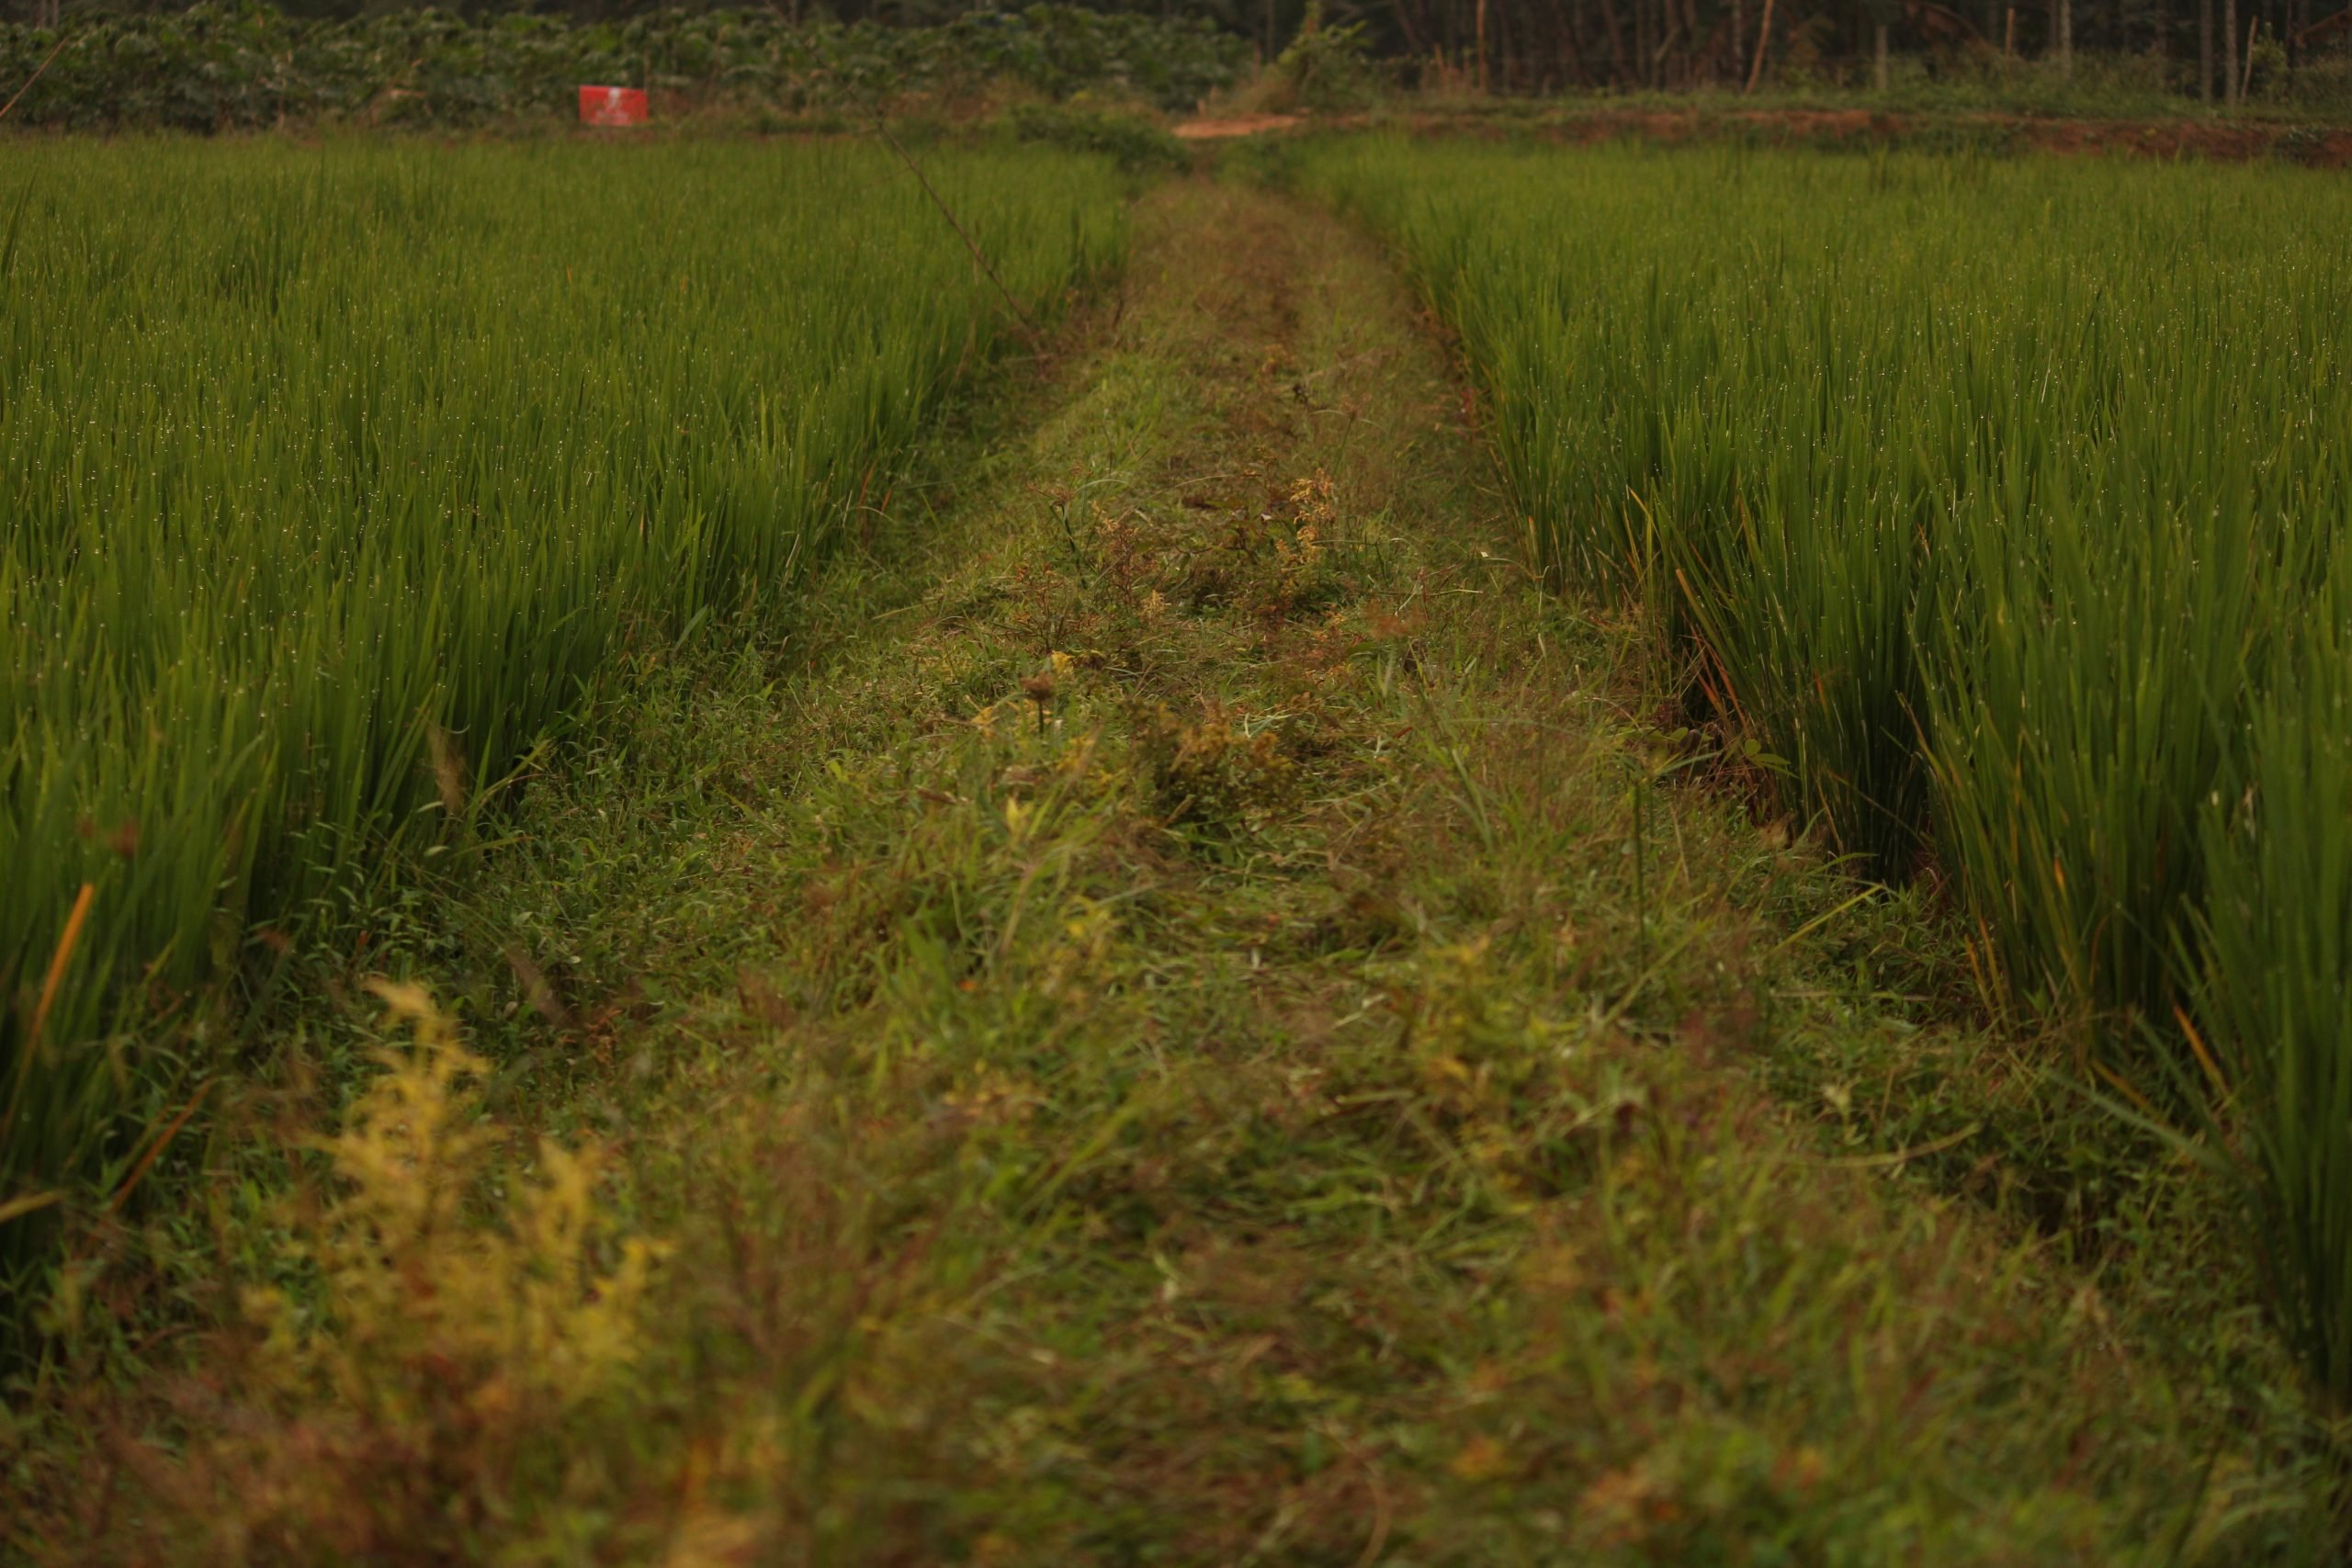 A way between paddy fields